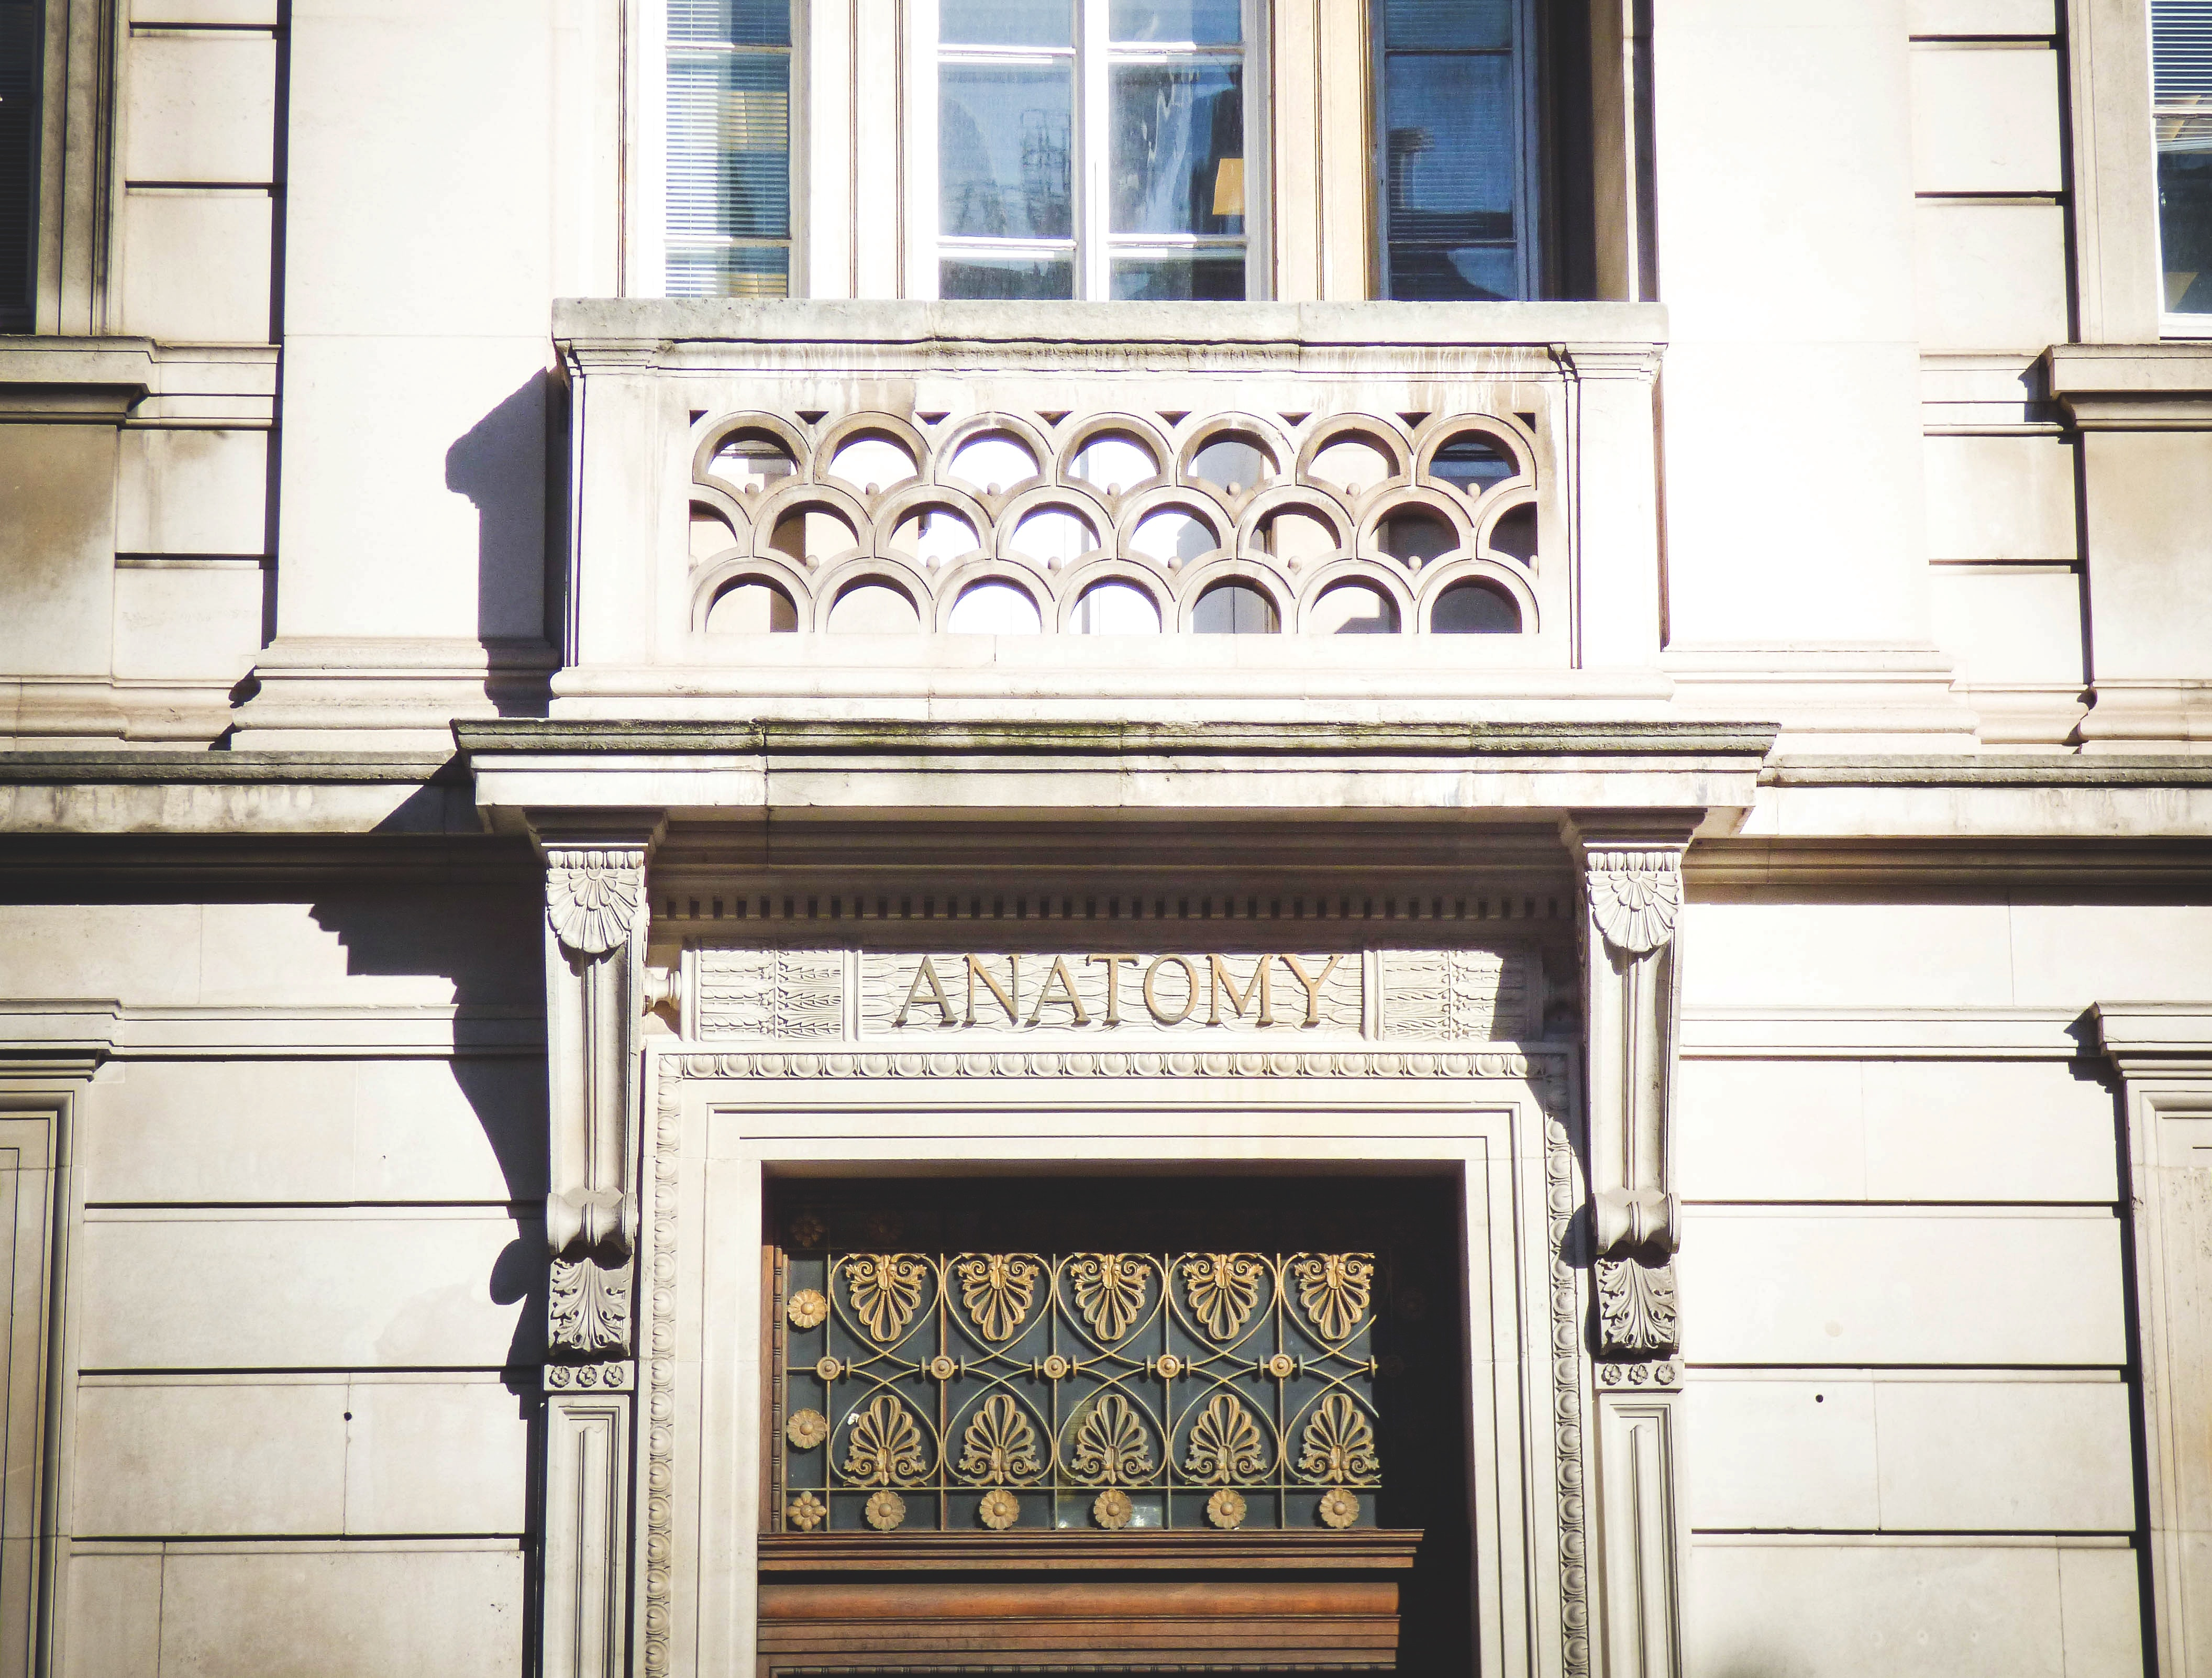 Free photo: Anatomy Building - house, facade, outdoors - CC0 License ...